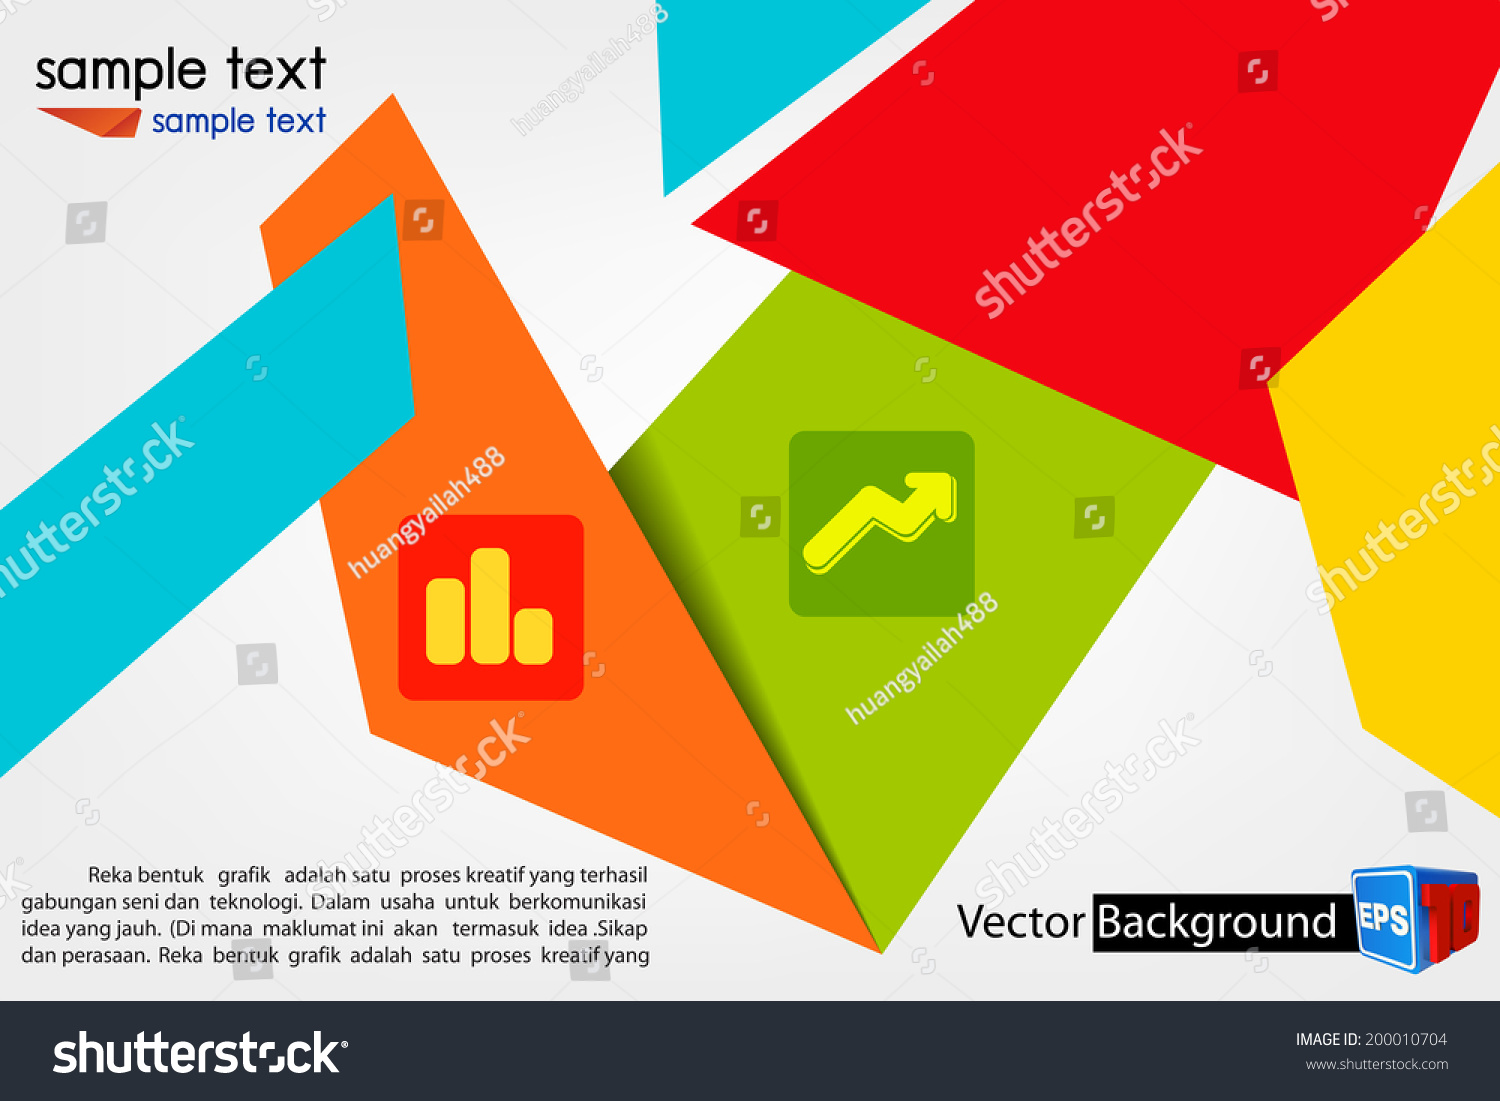 Abstract background design stock photo photo vector illustration abstract background for design ccuart Image collections